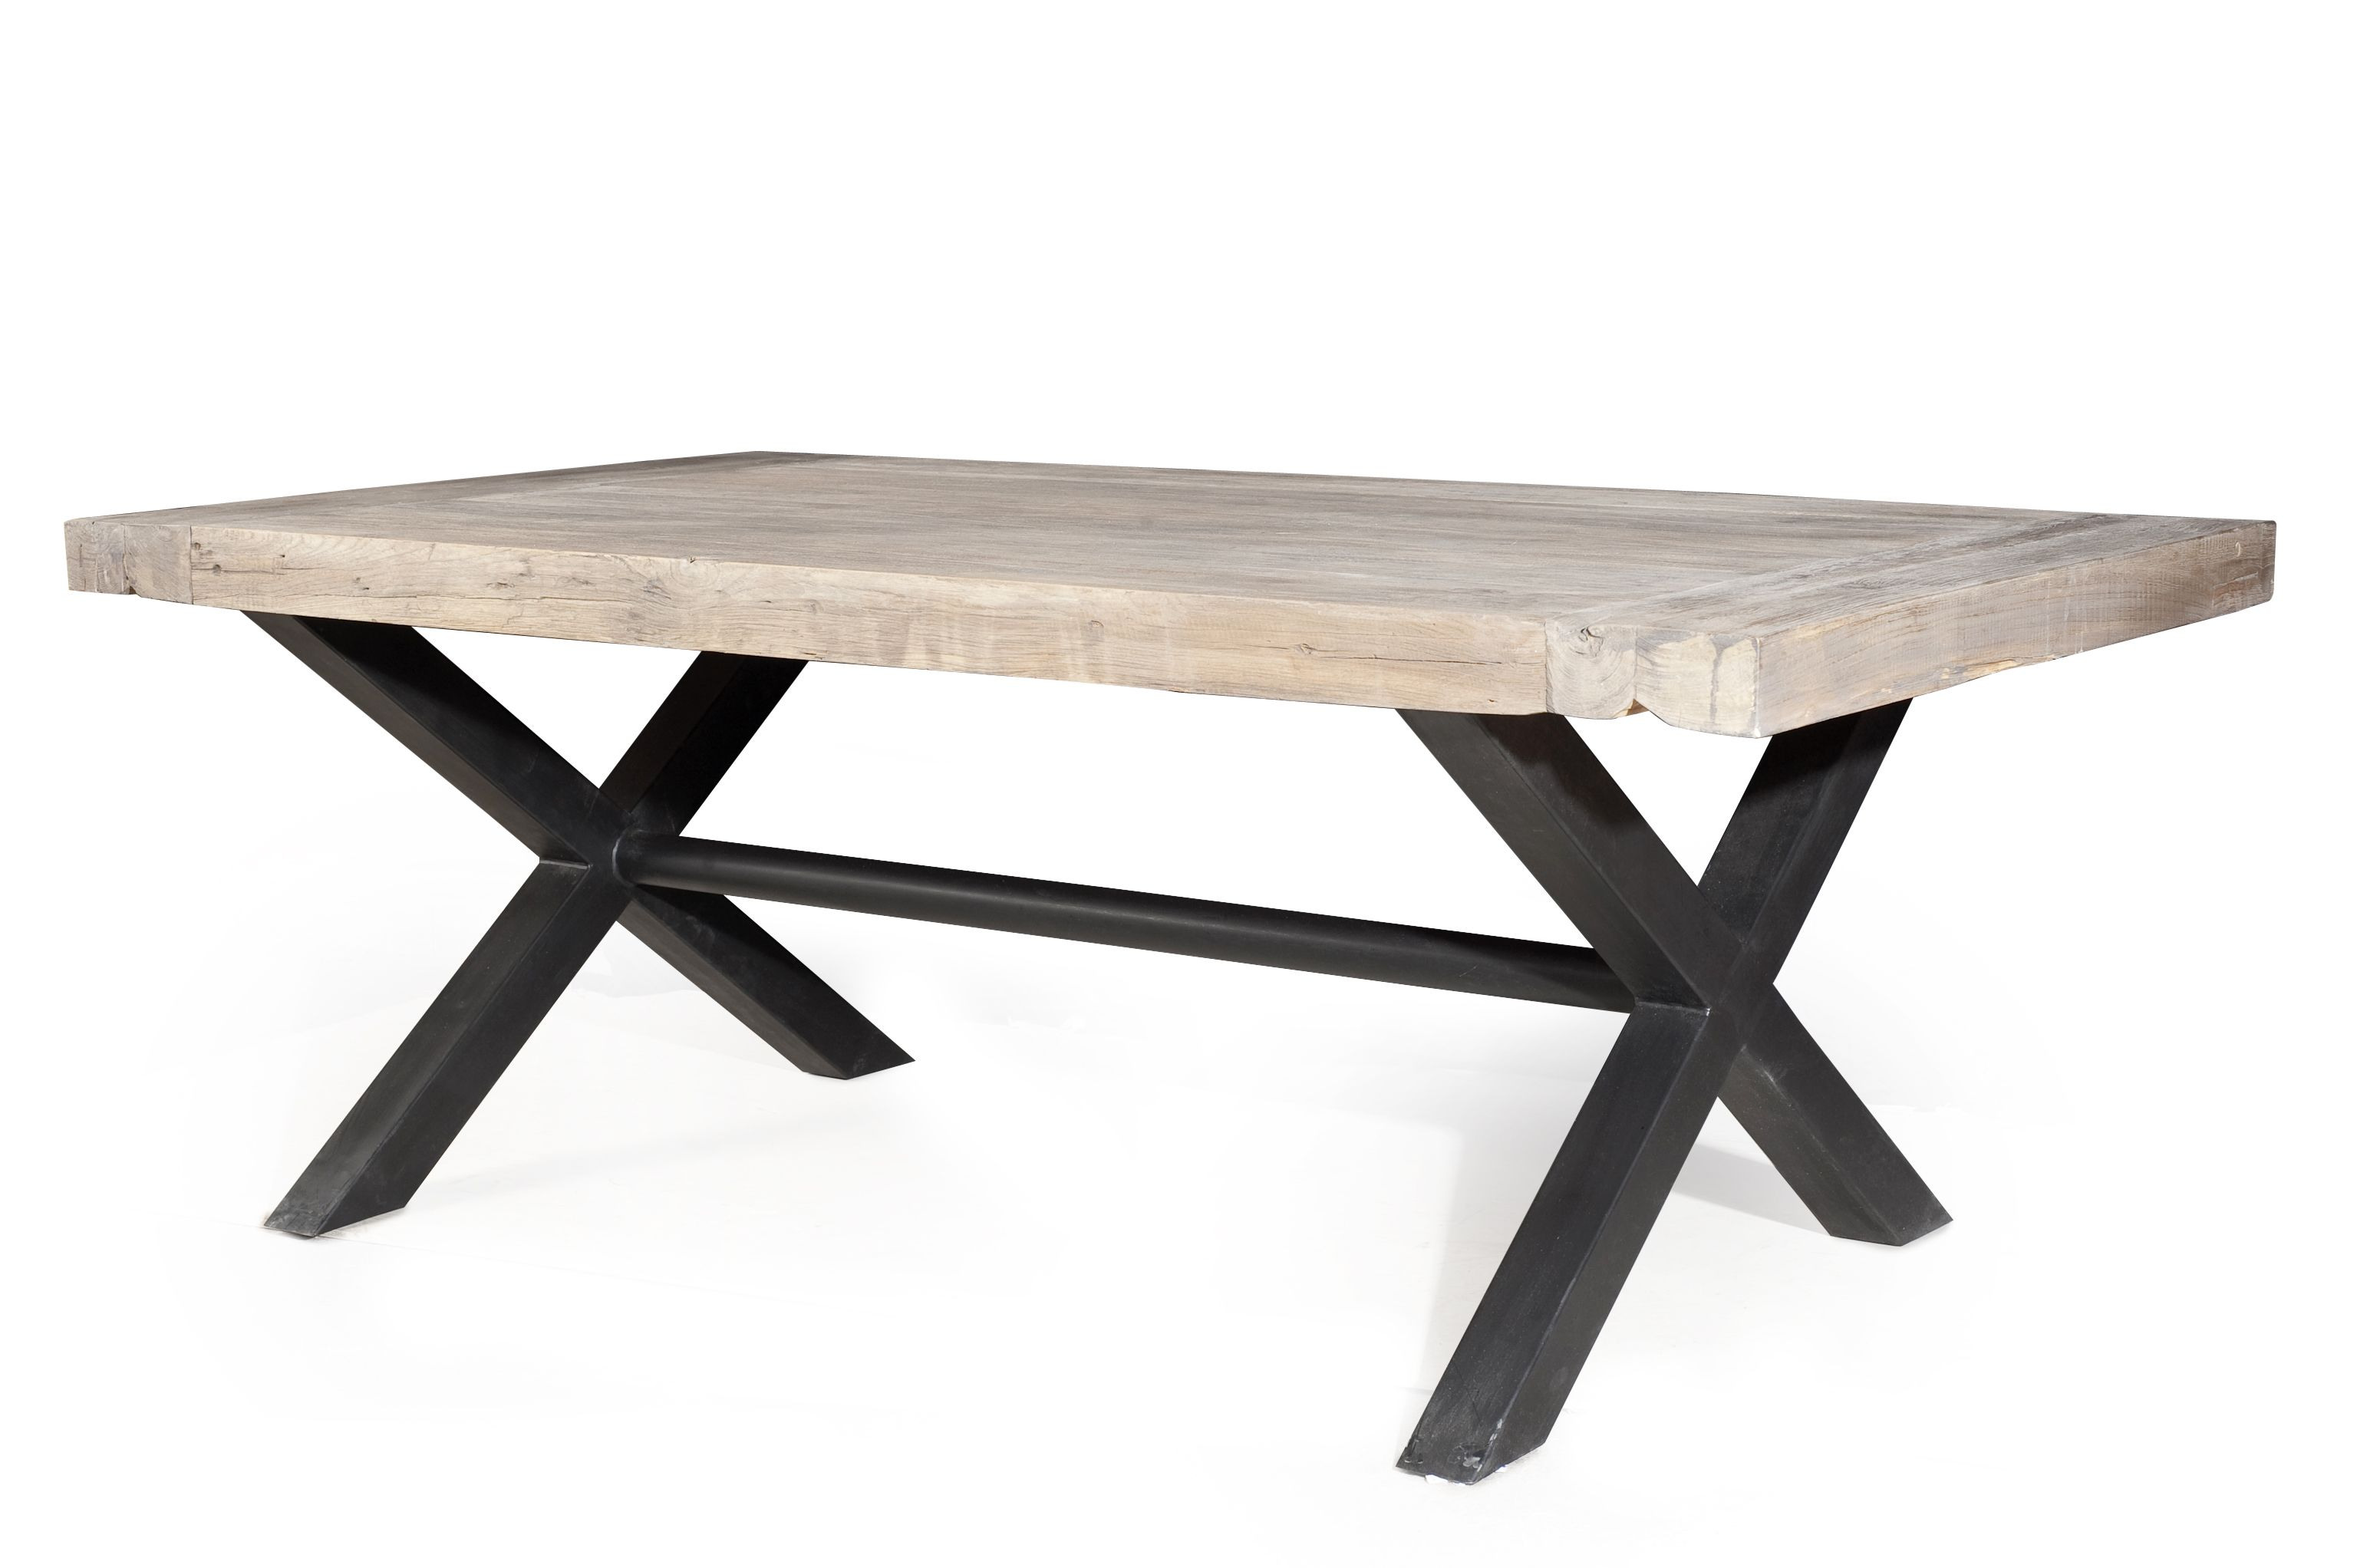 Comparatif table a manger fer forge et bois maison pinterest fer forg - Table bois fer forge ...